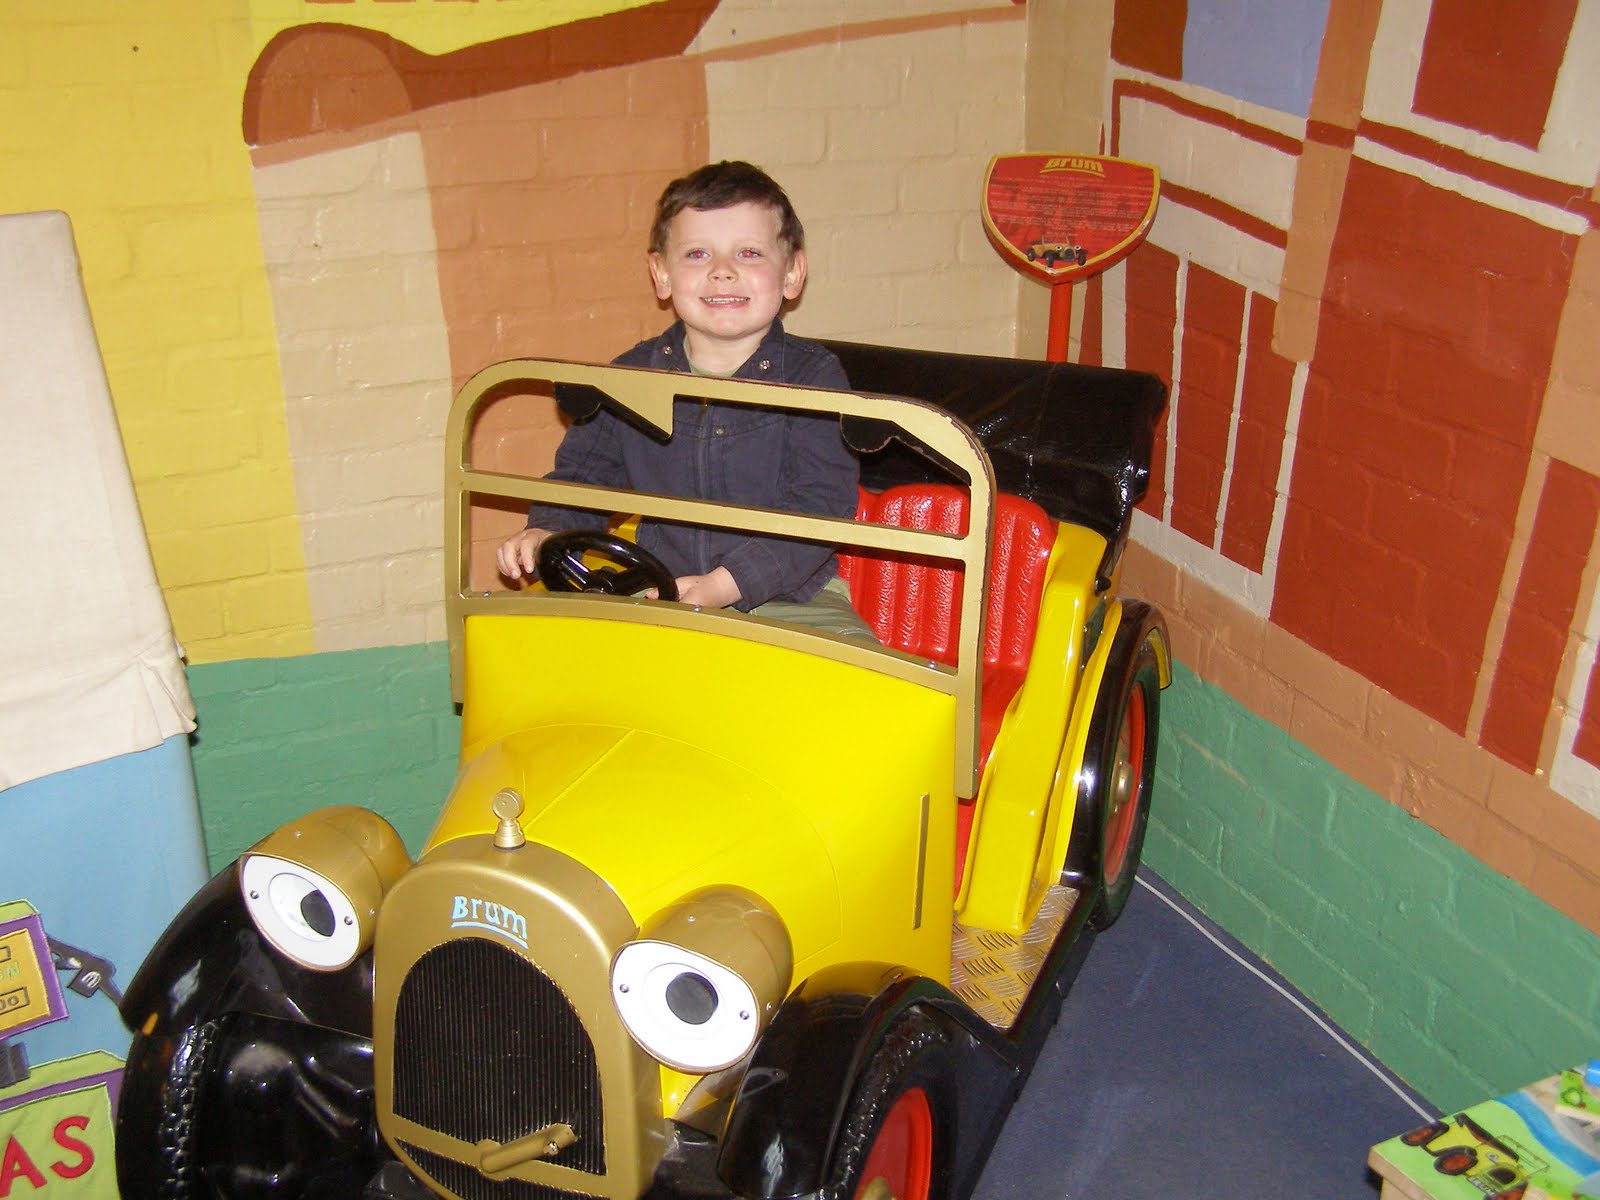 Brum The Toy Car Games To Play Online - WordPress Blog